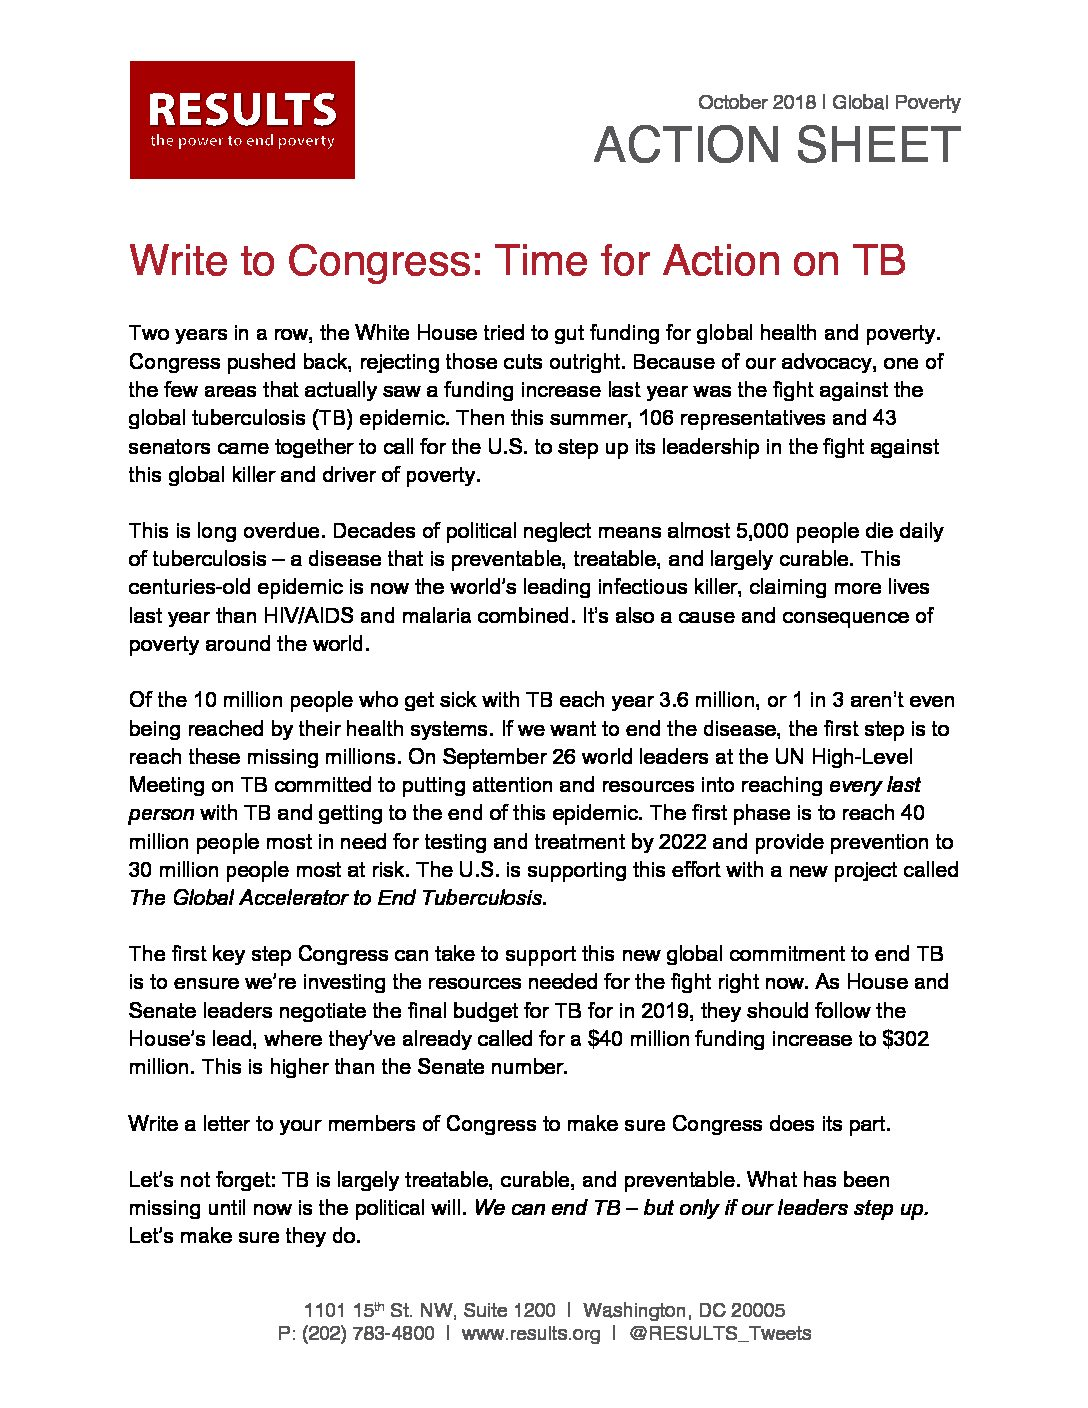 October 2018 Global Action Write To Congress On TB Funding